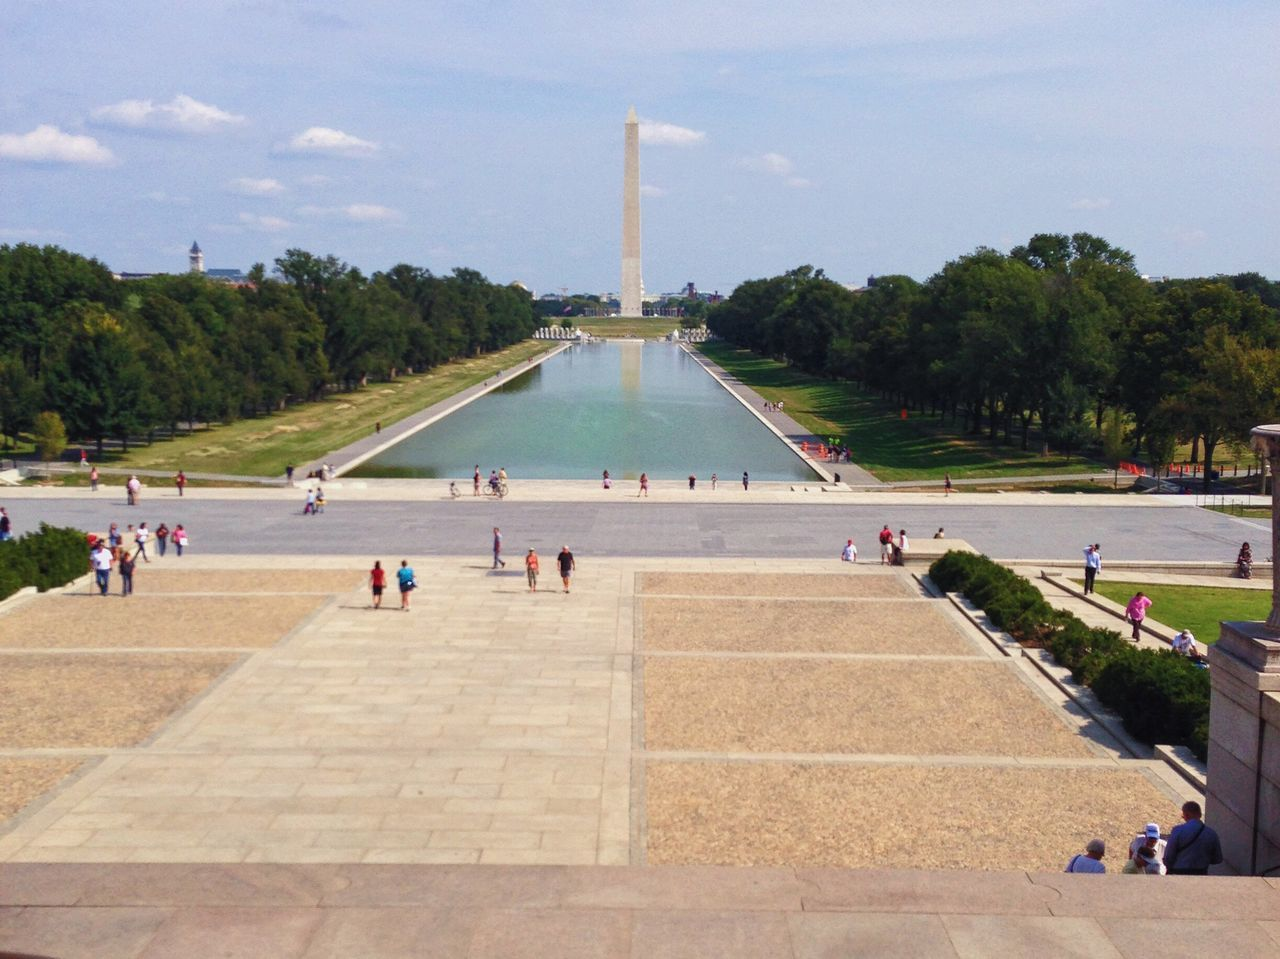 Travel Destinations Tourism Travel Large Group Of People Real People Monument Sky Day Men Outdoors Water Architecture People Adult Washington, D. C.